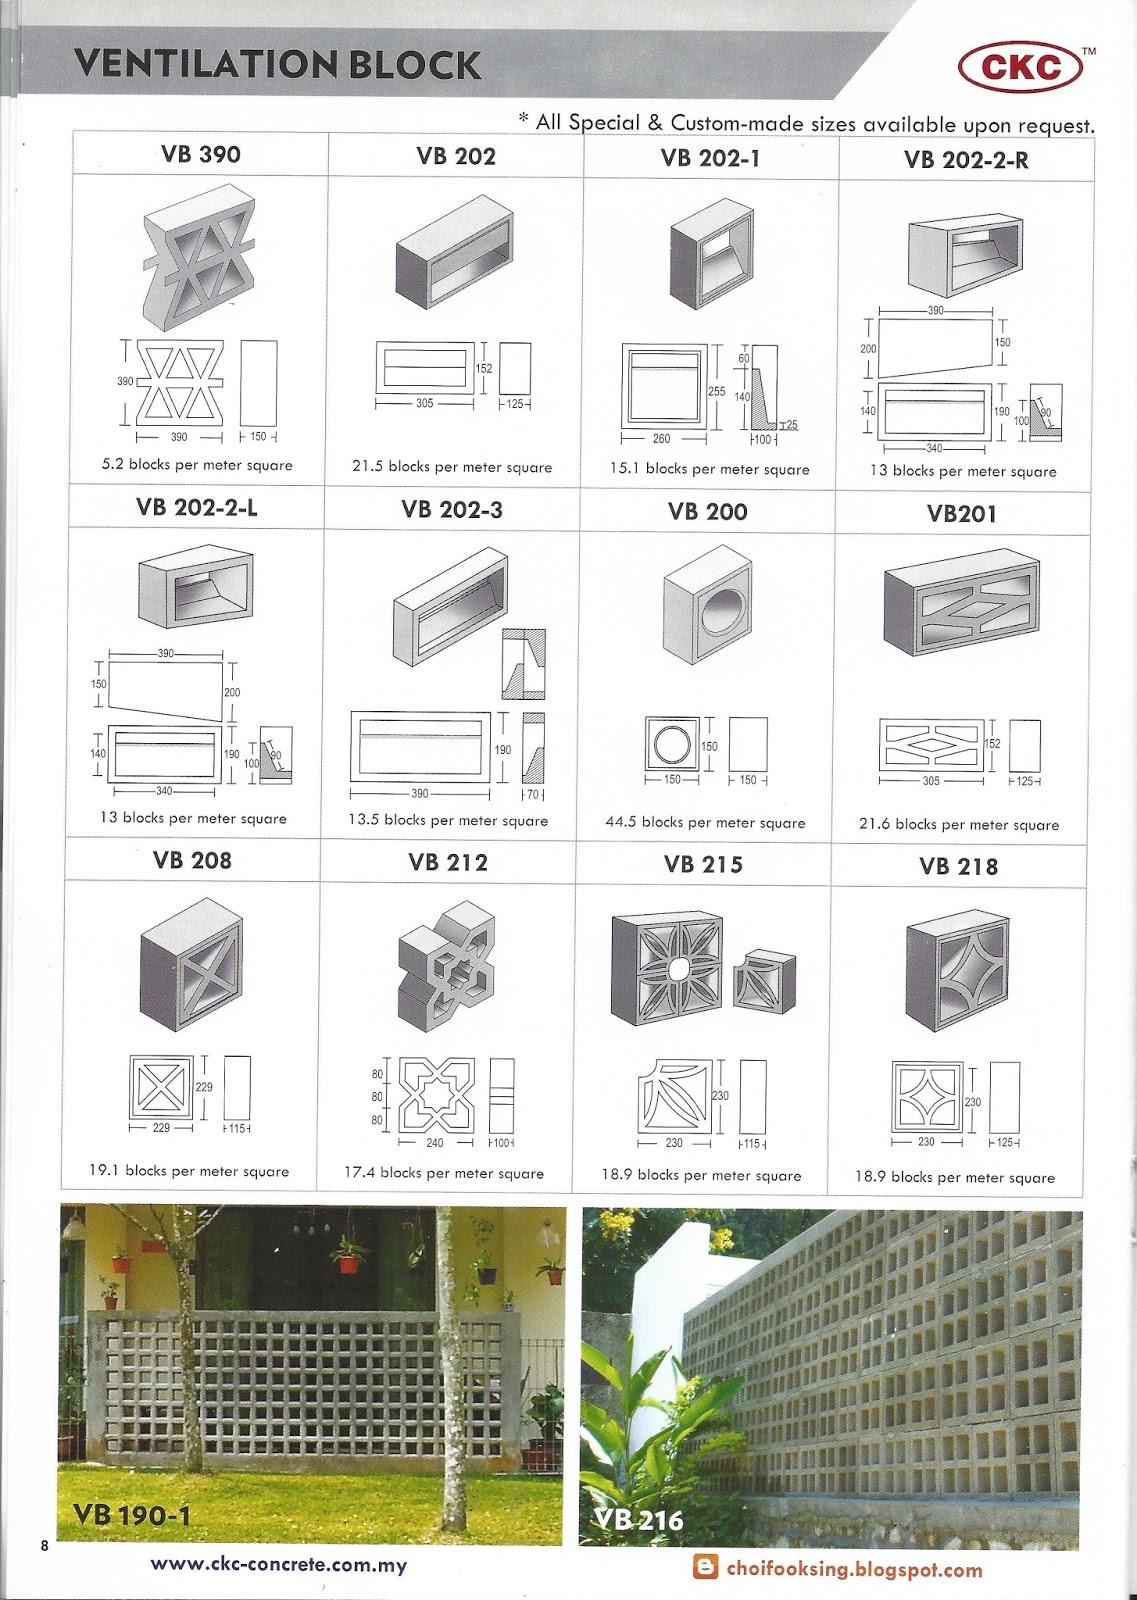 Ventilation block price